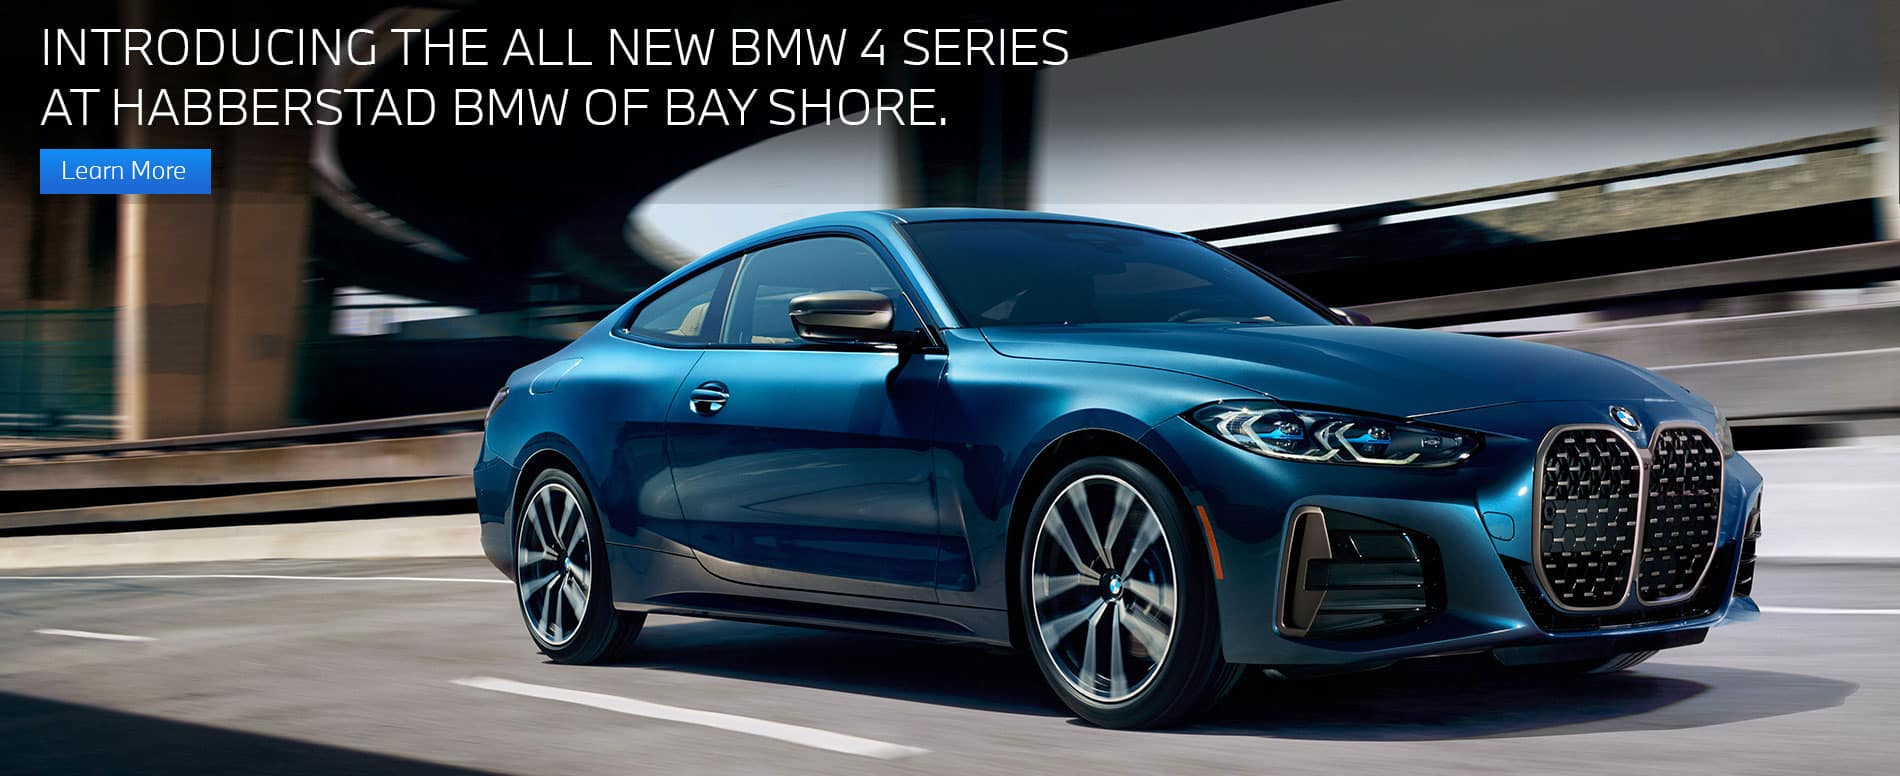 4-Series-BAY-SHORE